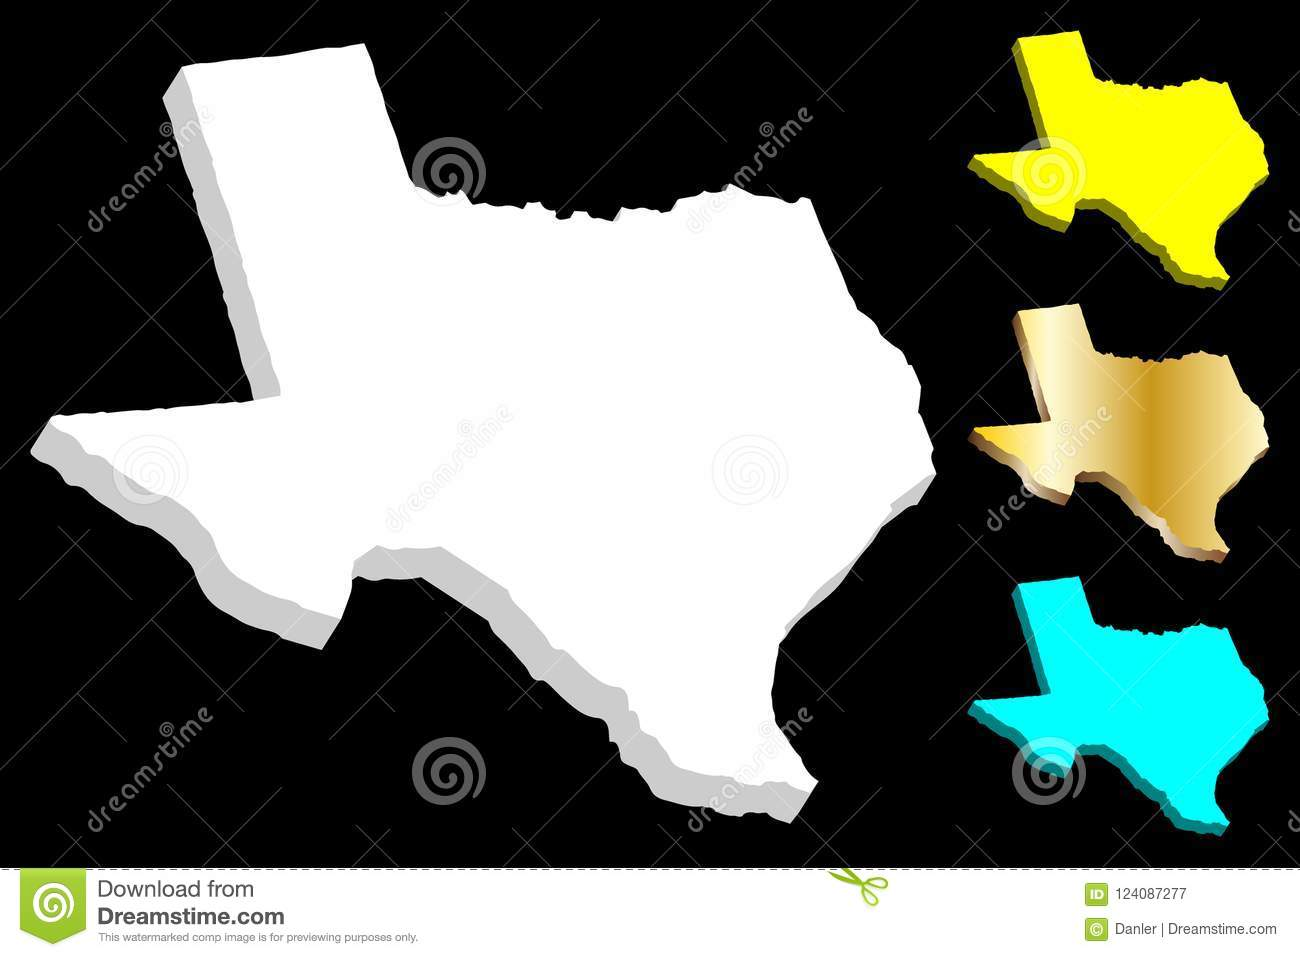 3d Map Of Texas Stock Vector Illustration Of Dimensional 124087277